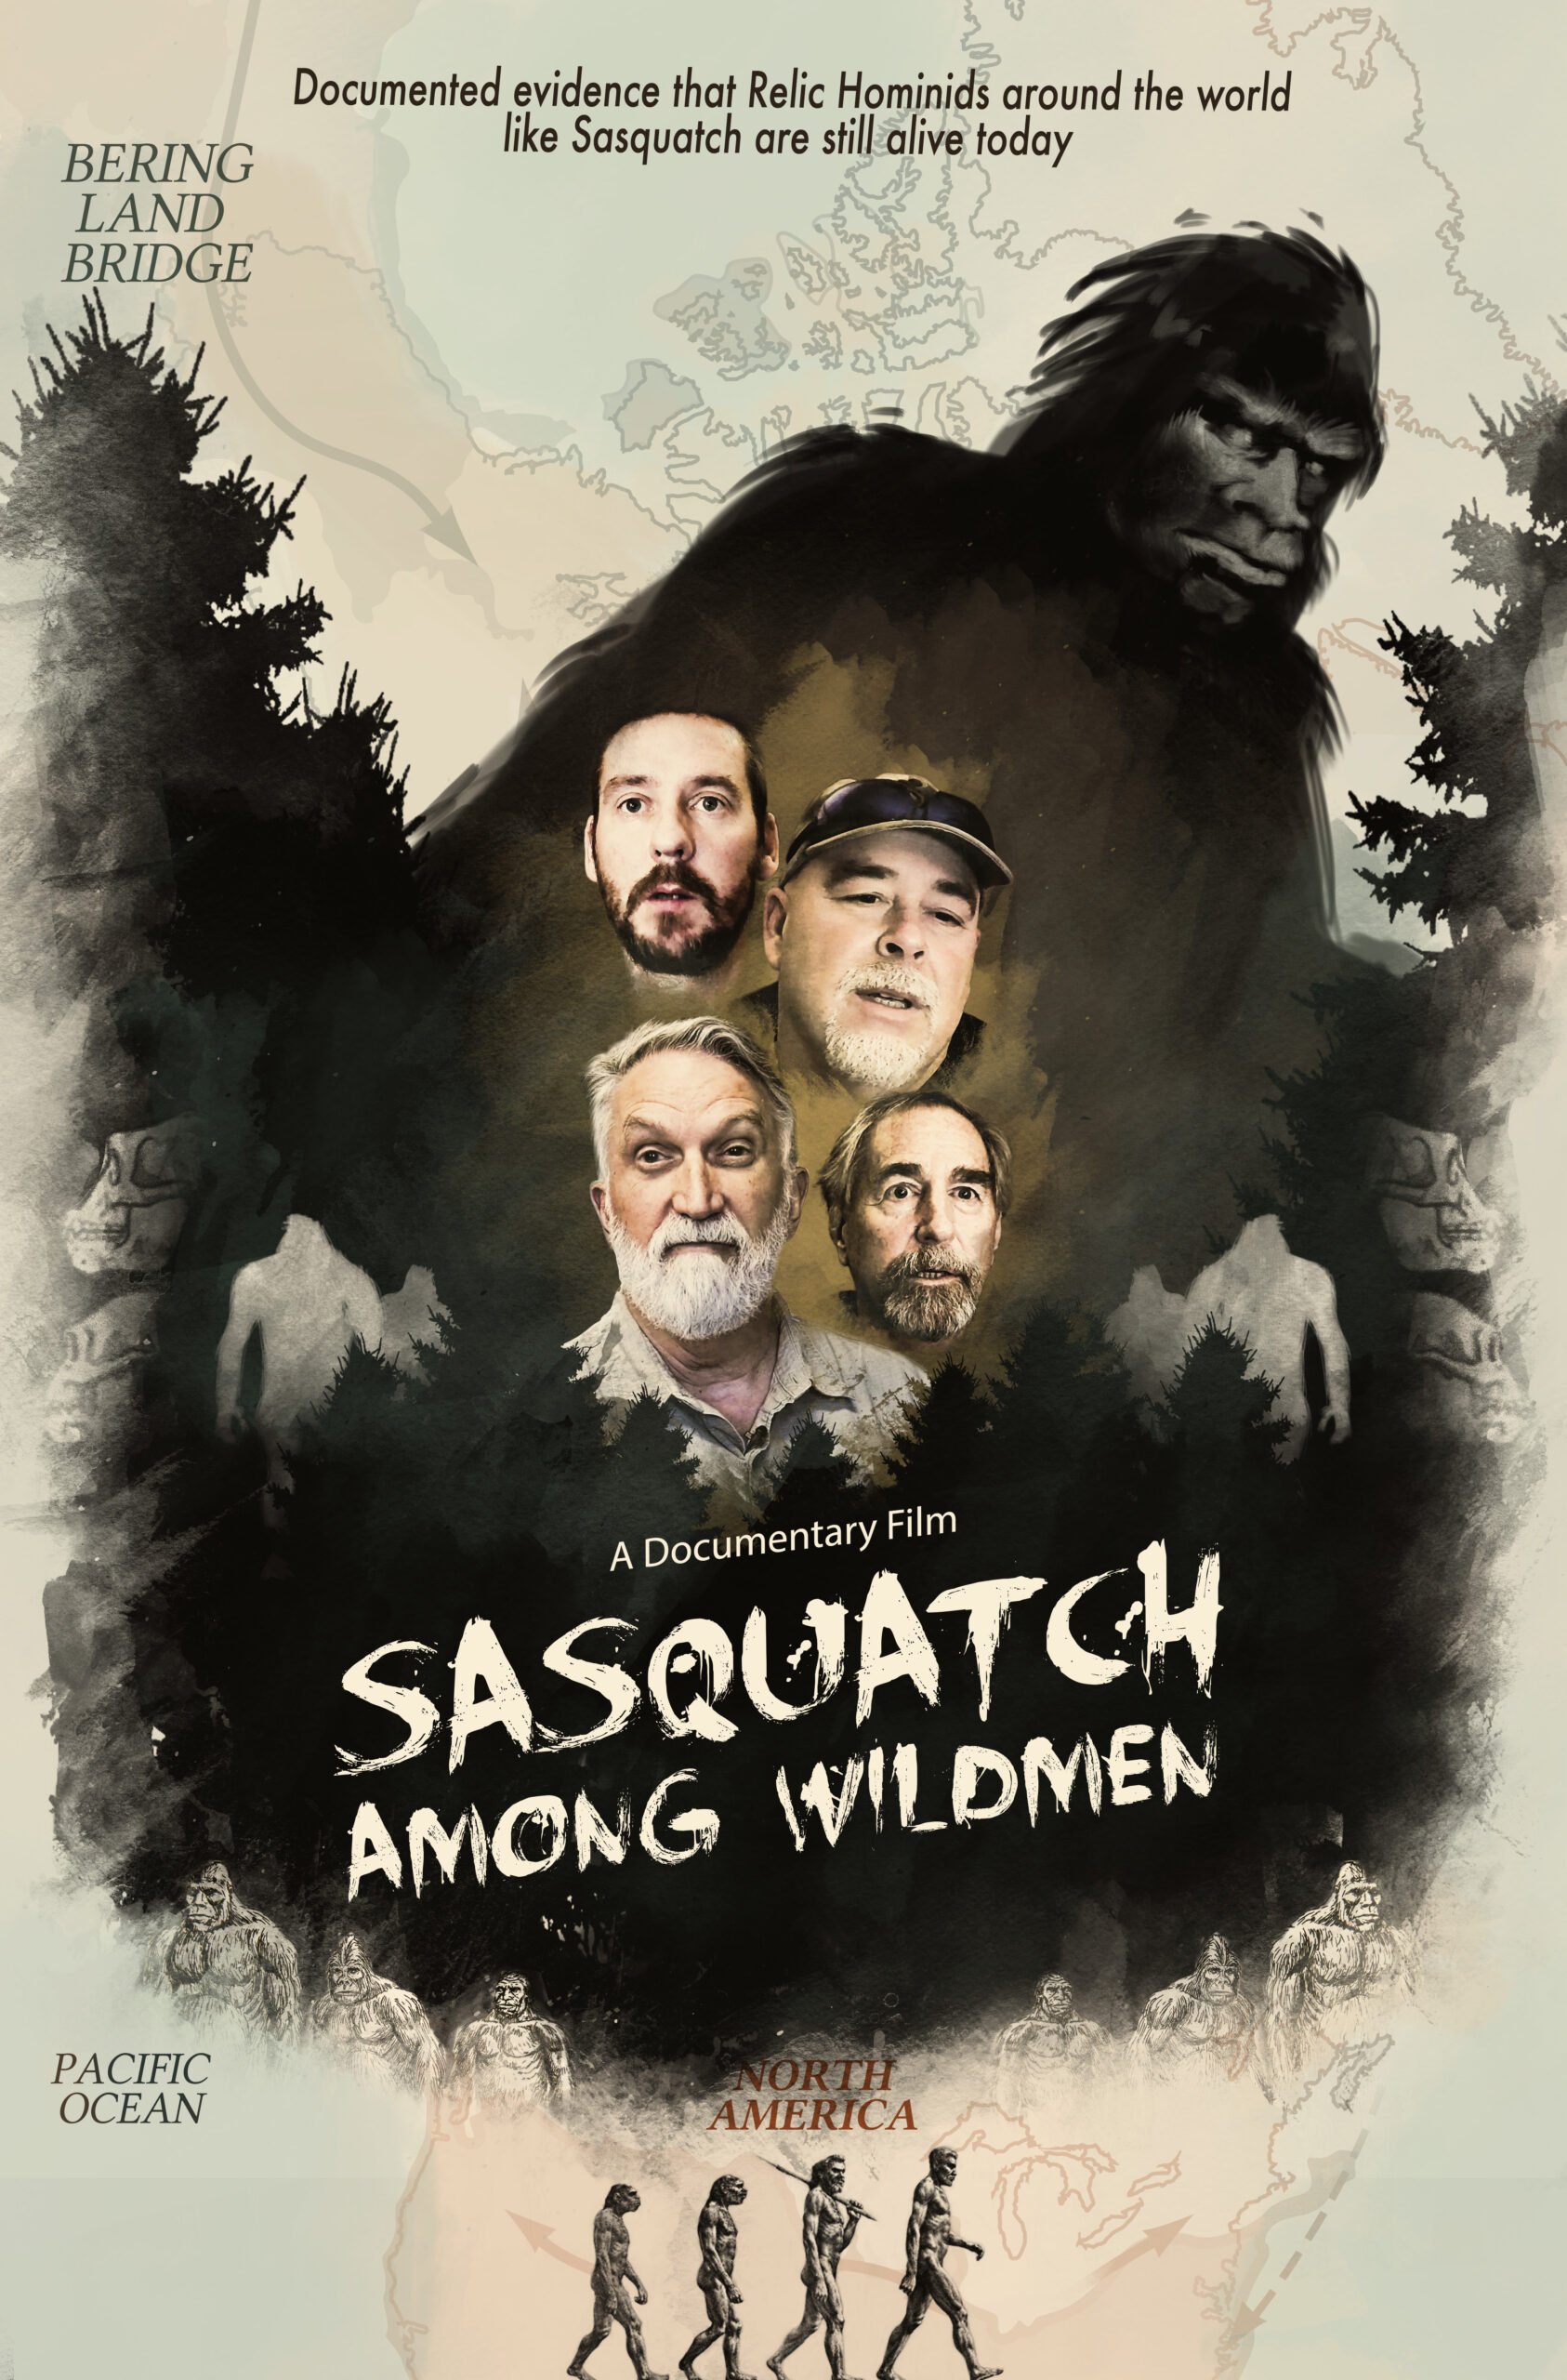 SASQUATCH AMONG WILDMEN // The truth about Bigfoot revealed!